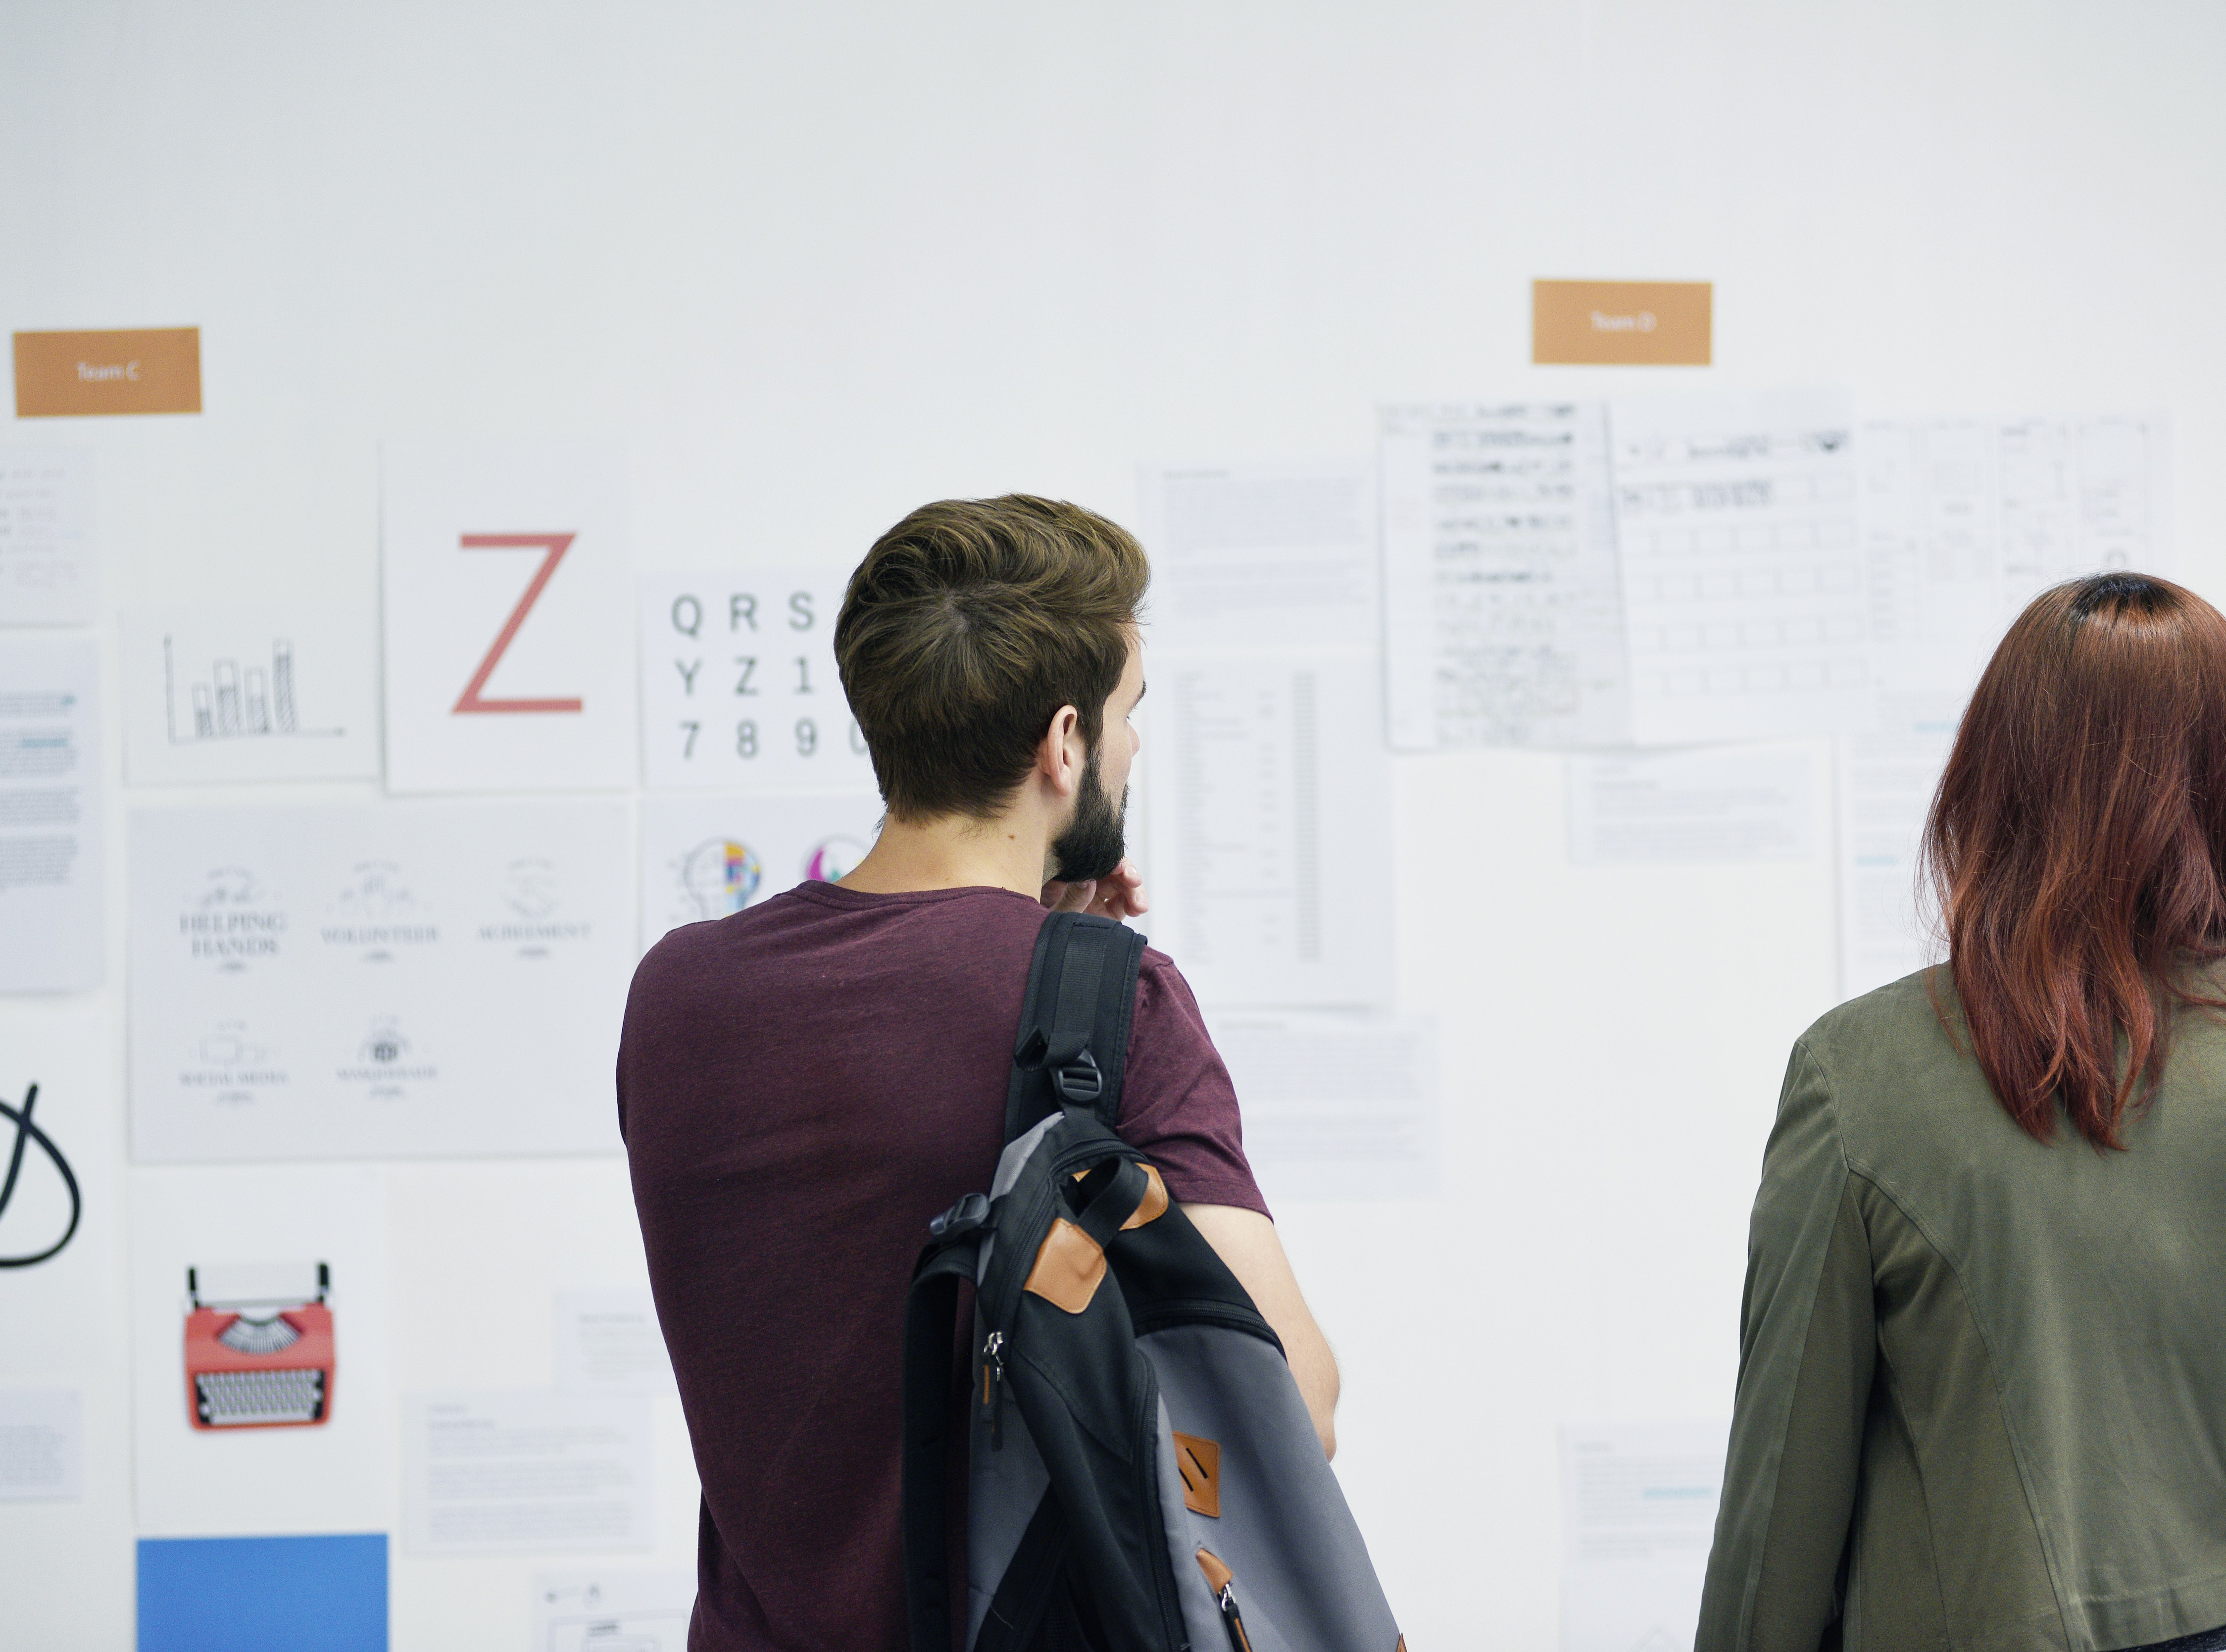 A man and a woman looking at posters on a white wall